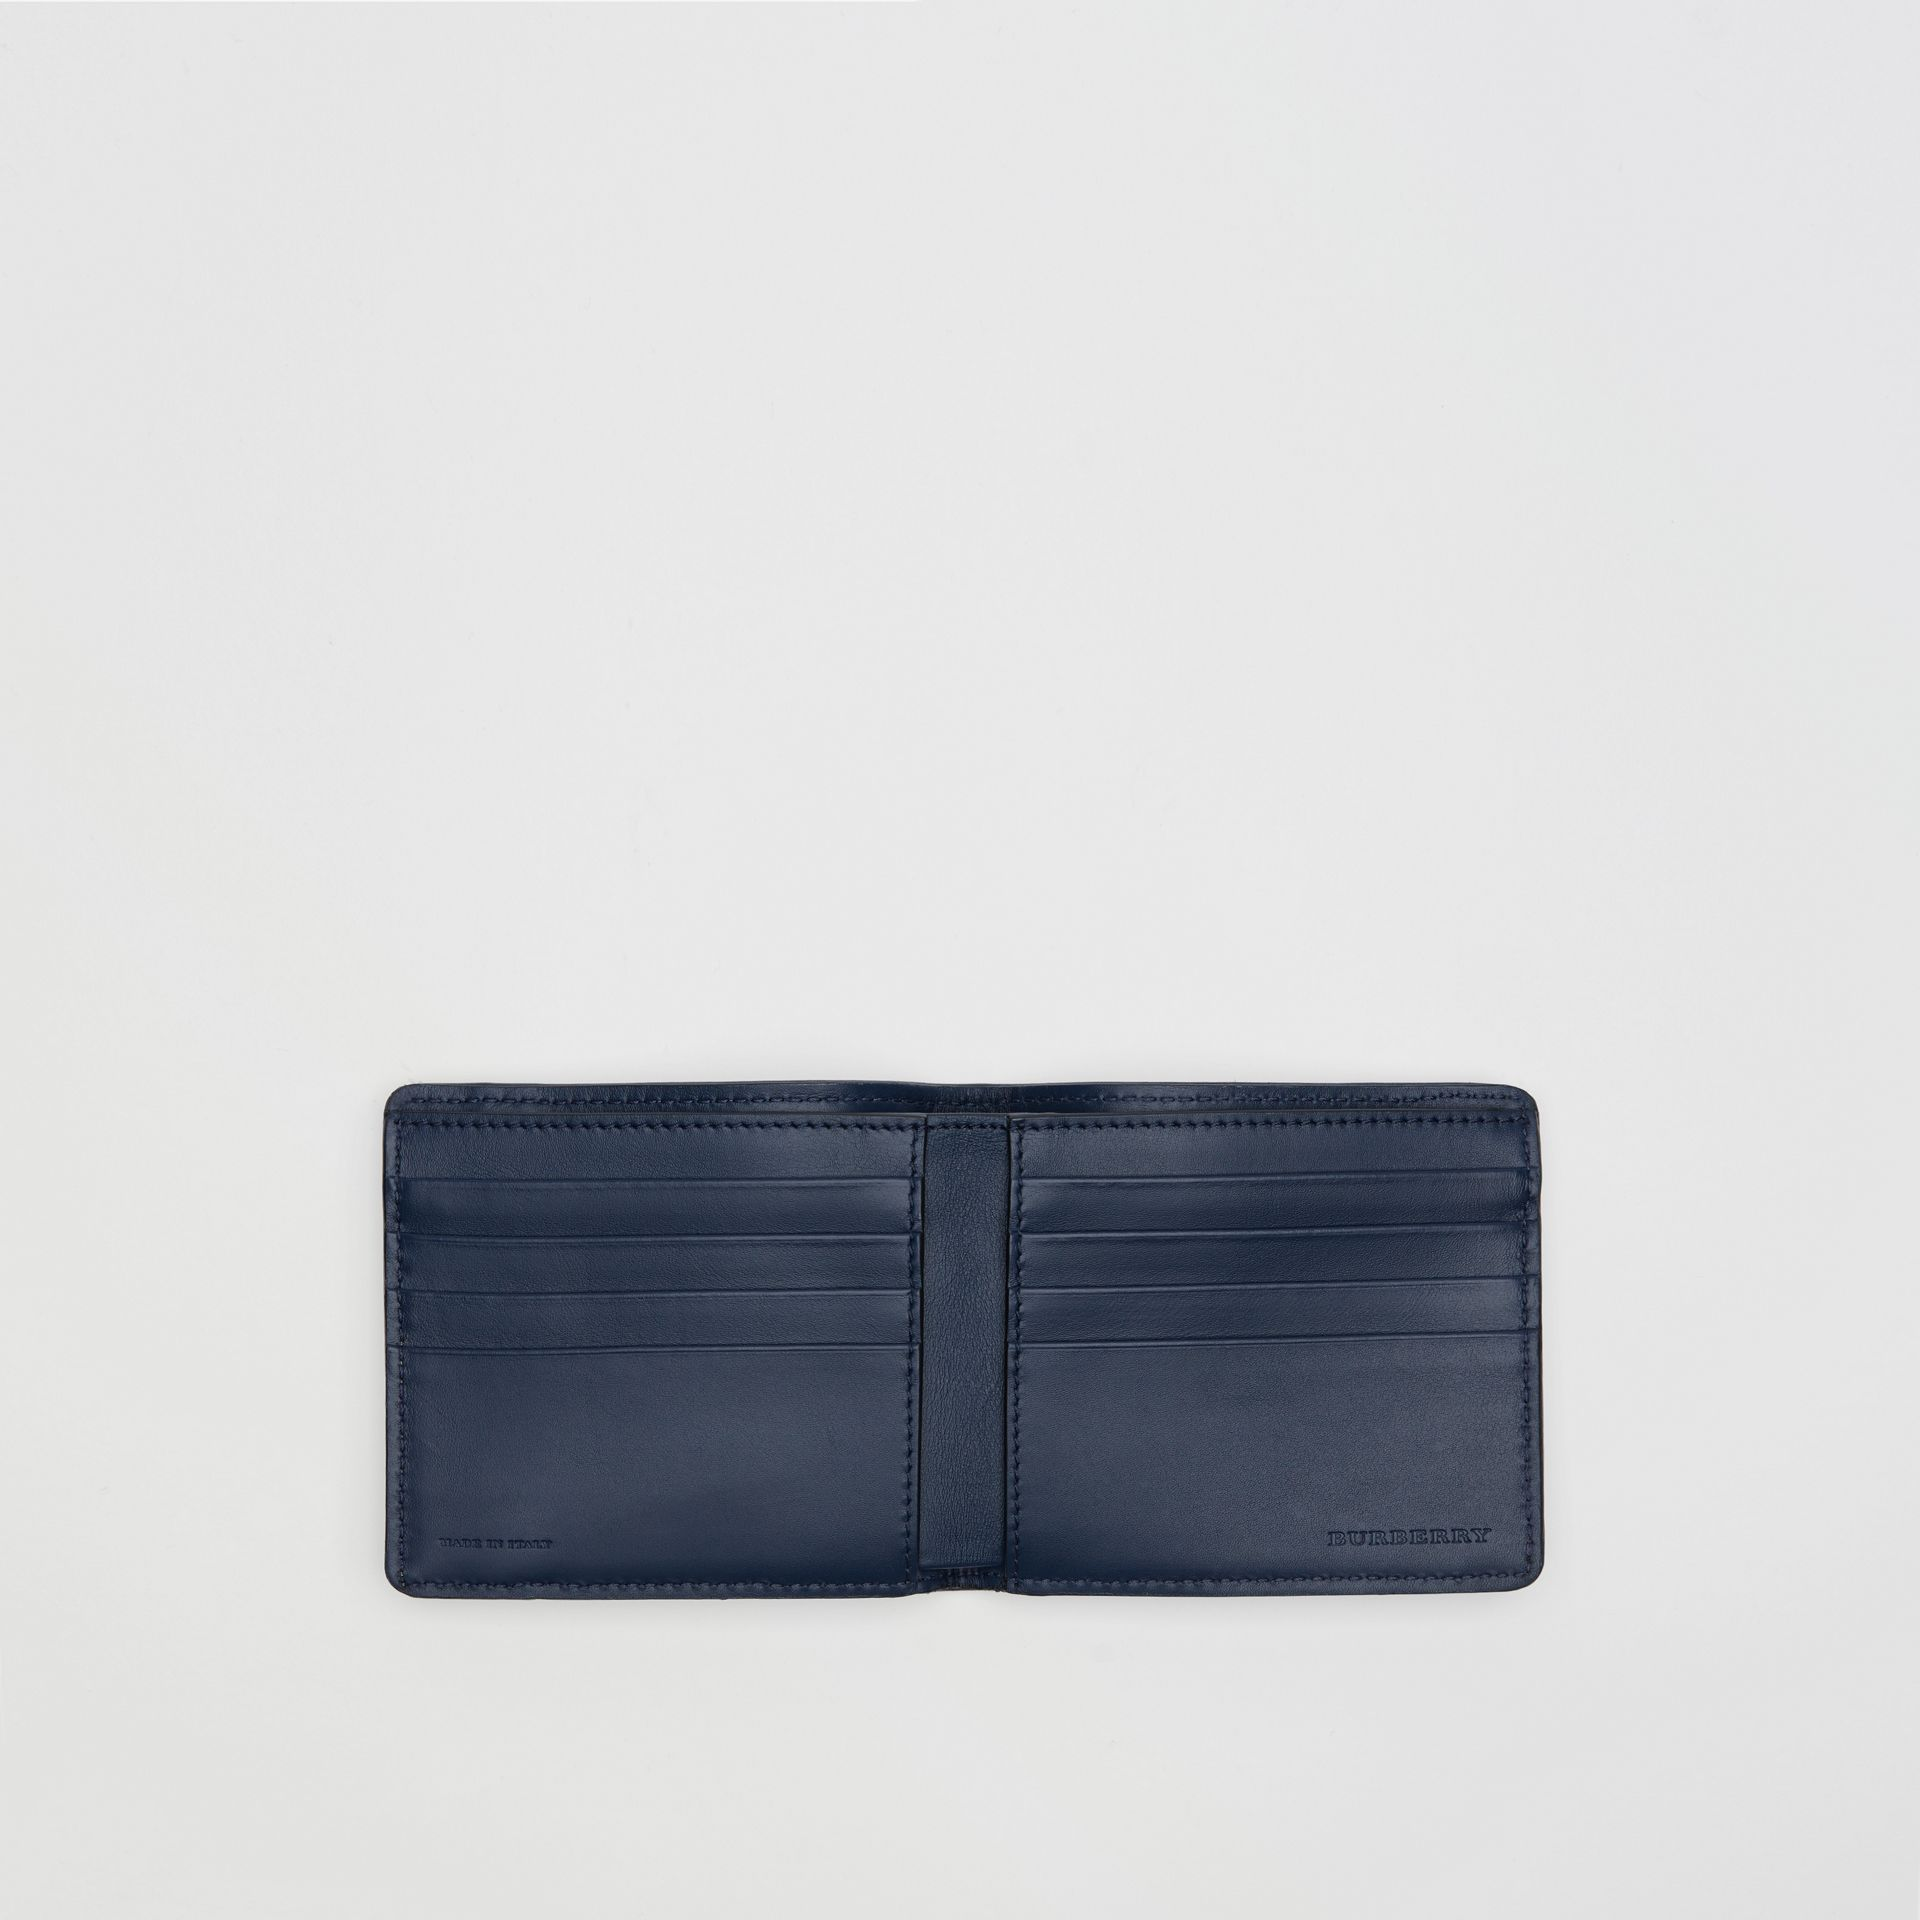 1983 Check and Leather International Bifold Wallet in Ink Blue - Men | Burberry Canada - gallery image 3